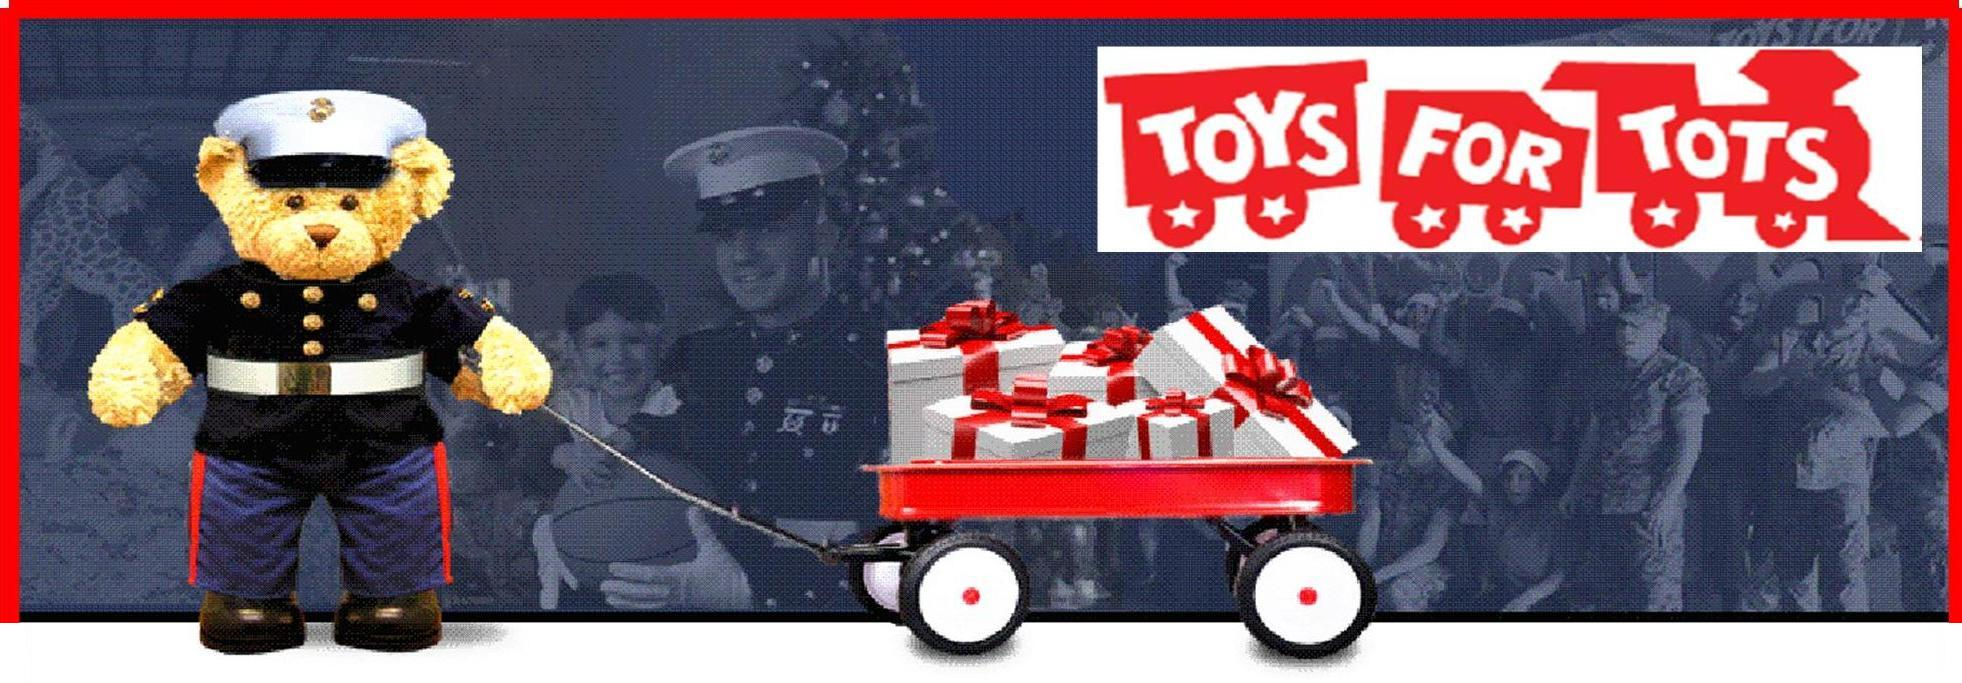 Marine-Corps-Toys-for-Tots